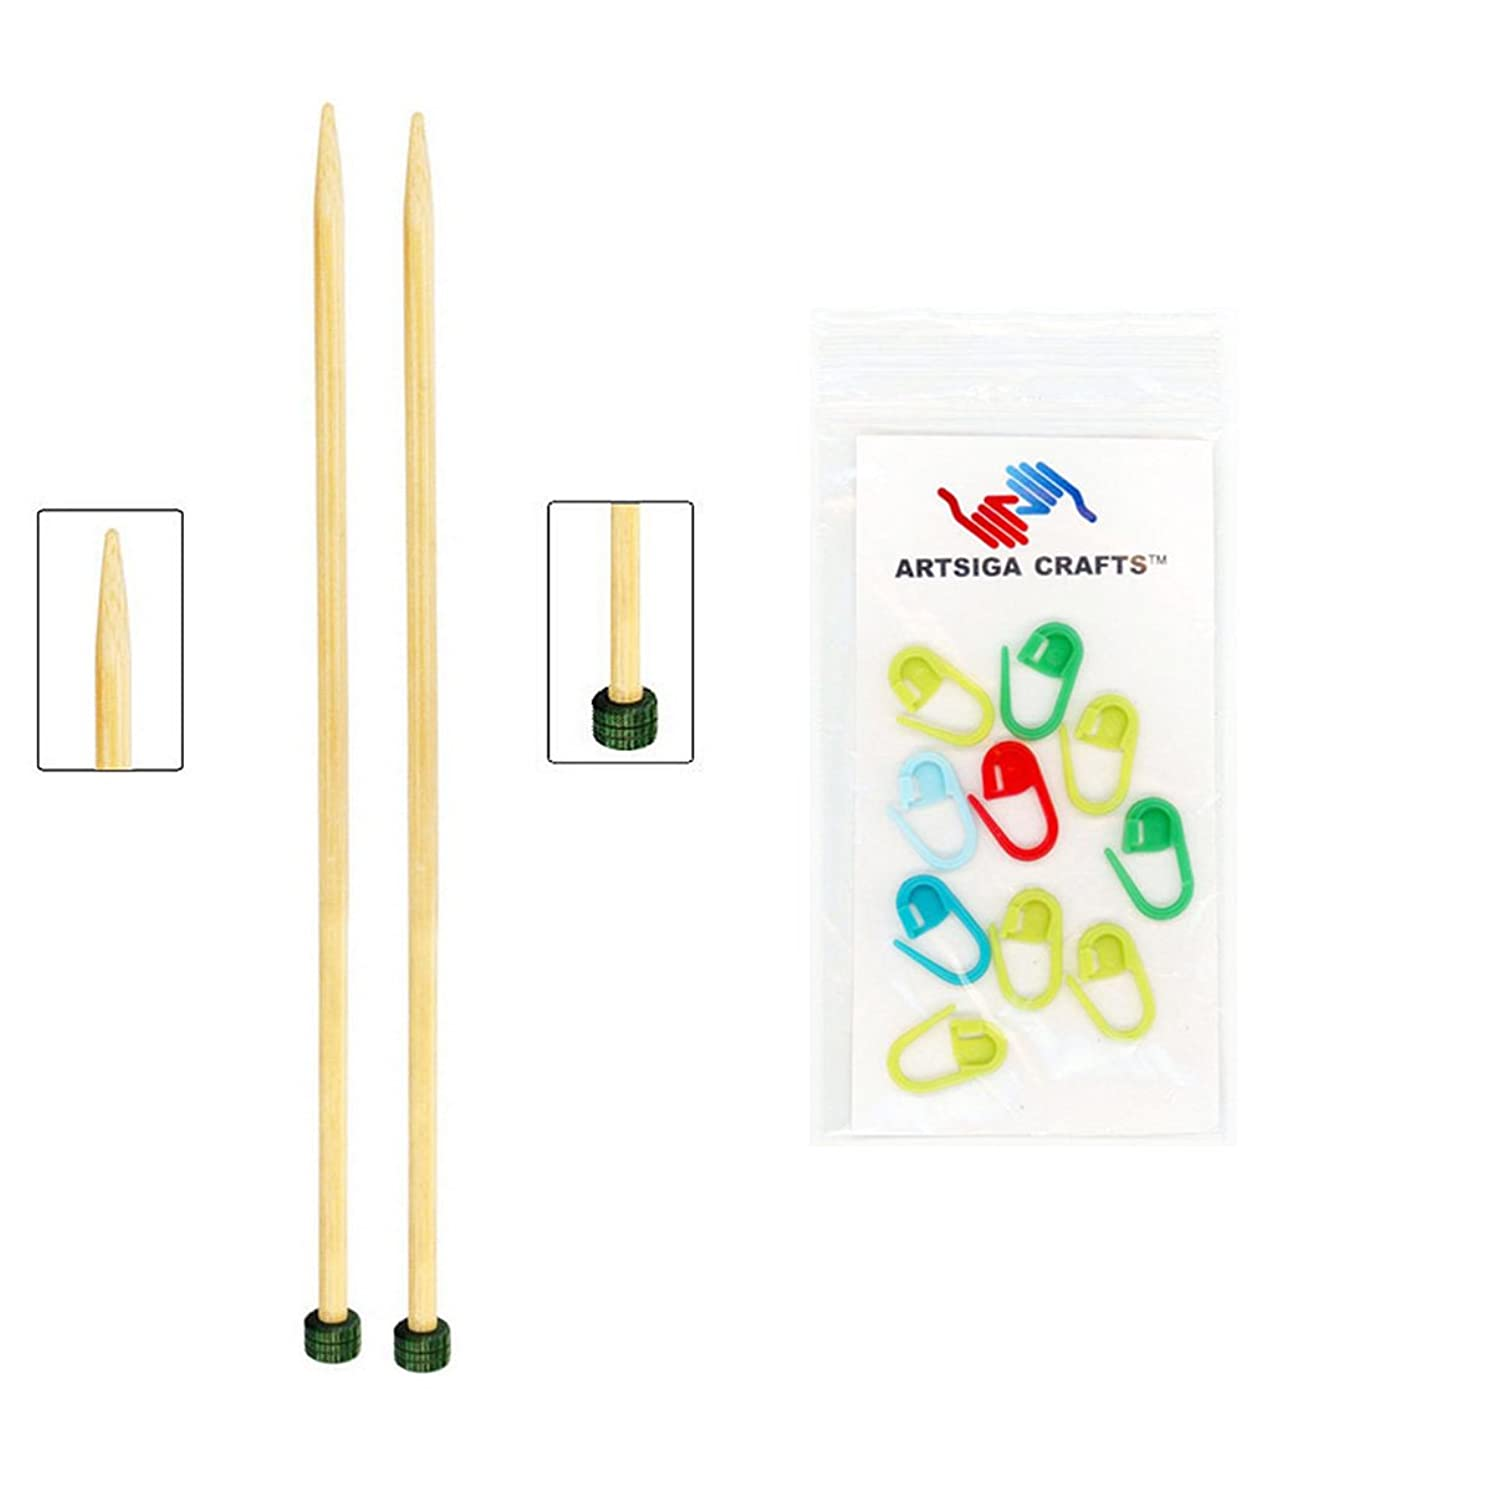 Knitter's Pride Knitting Needles Bamboo Single Point 10 inch (25cm) Size US 6 (4.00mm) Bundle with 10 Artsiga Crafts Stitch Markers 900299